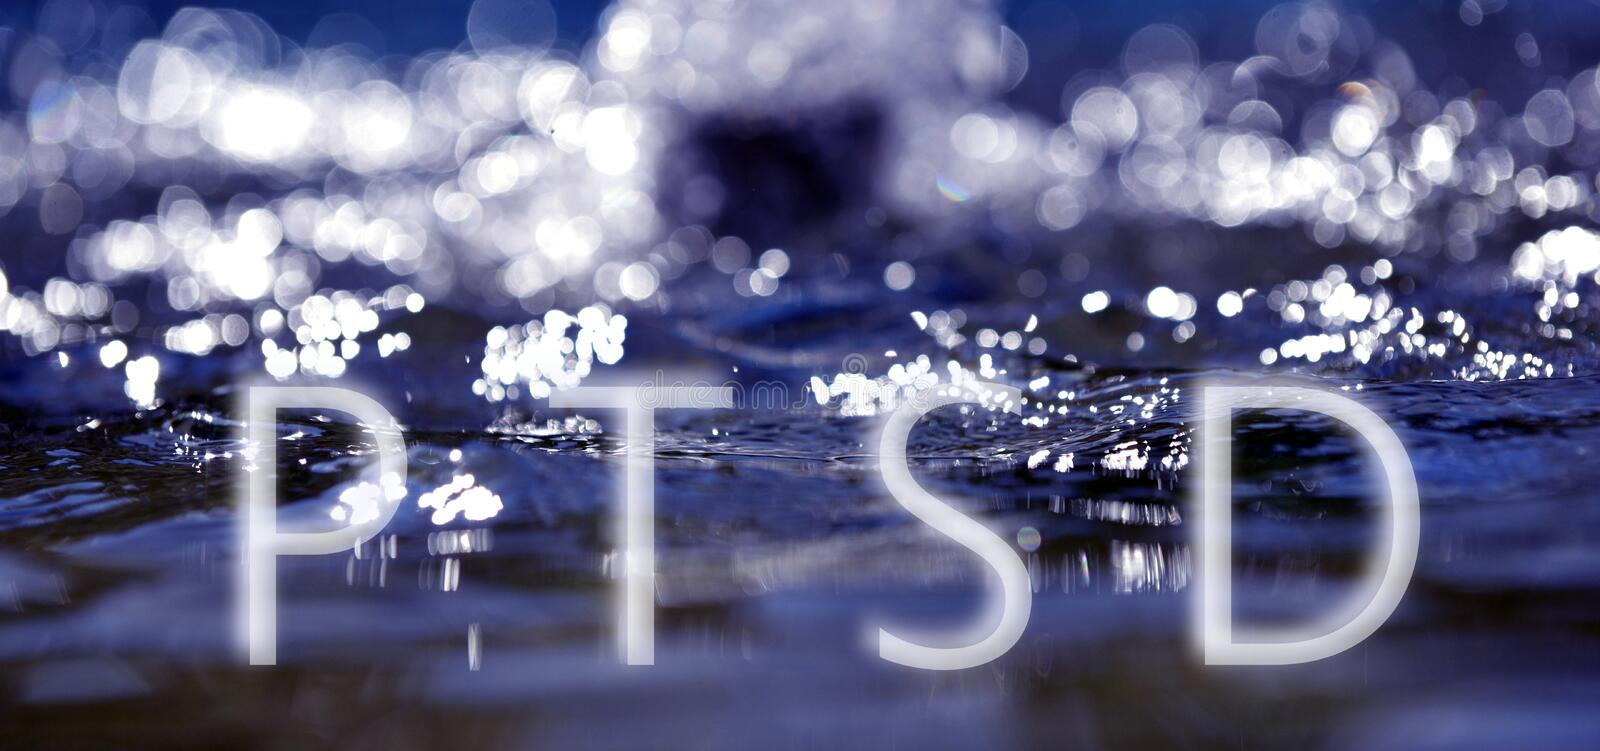 Bokeh light background in the pool with text ptsd royalty free stock image